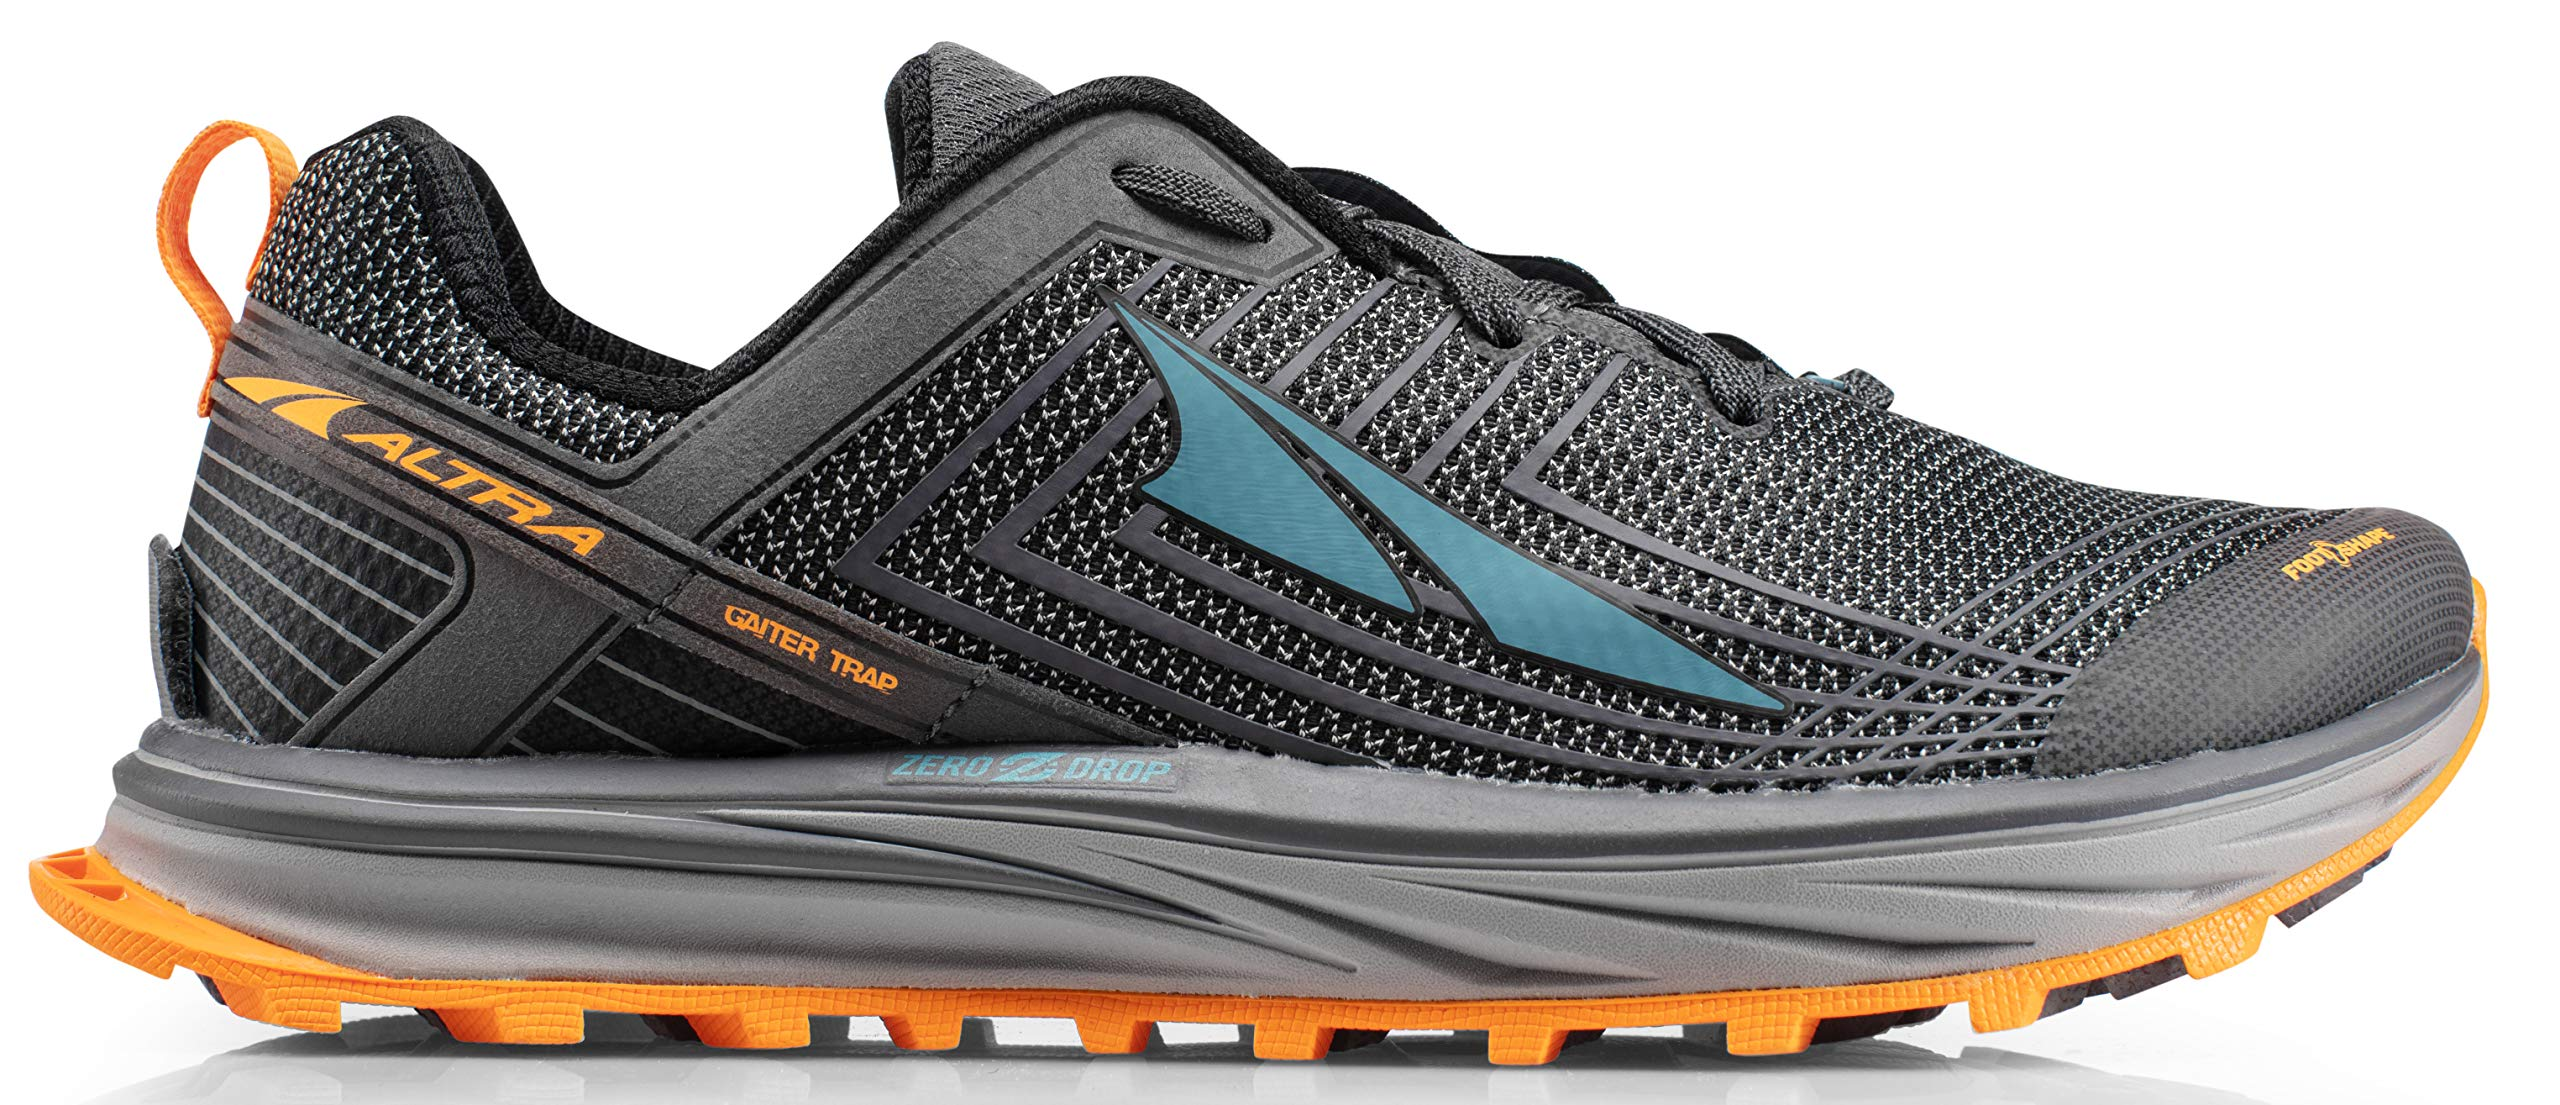 Altra AFM1957F Men's TIMP 1.5 Trail Running Shoe, Gray/Orange - 10 D(M) US by Altra